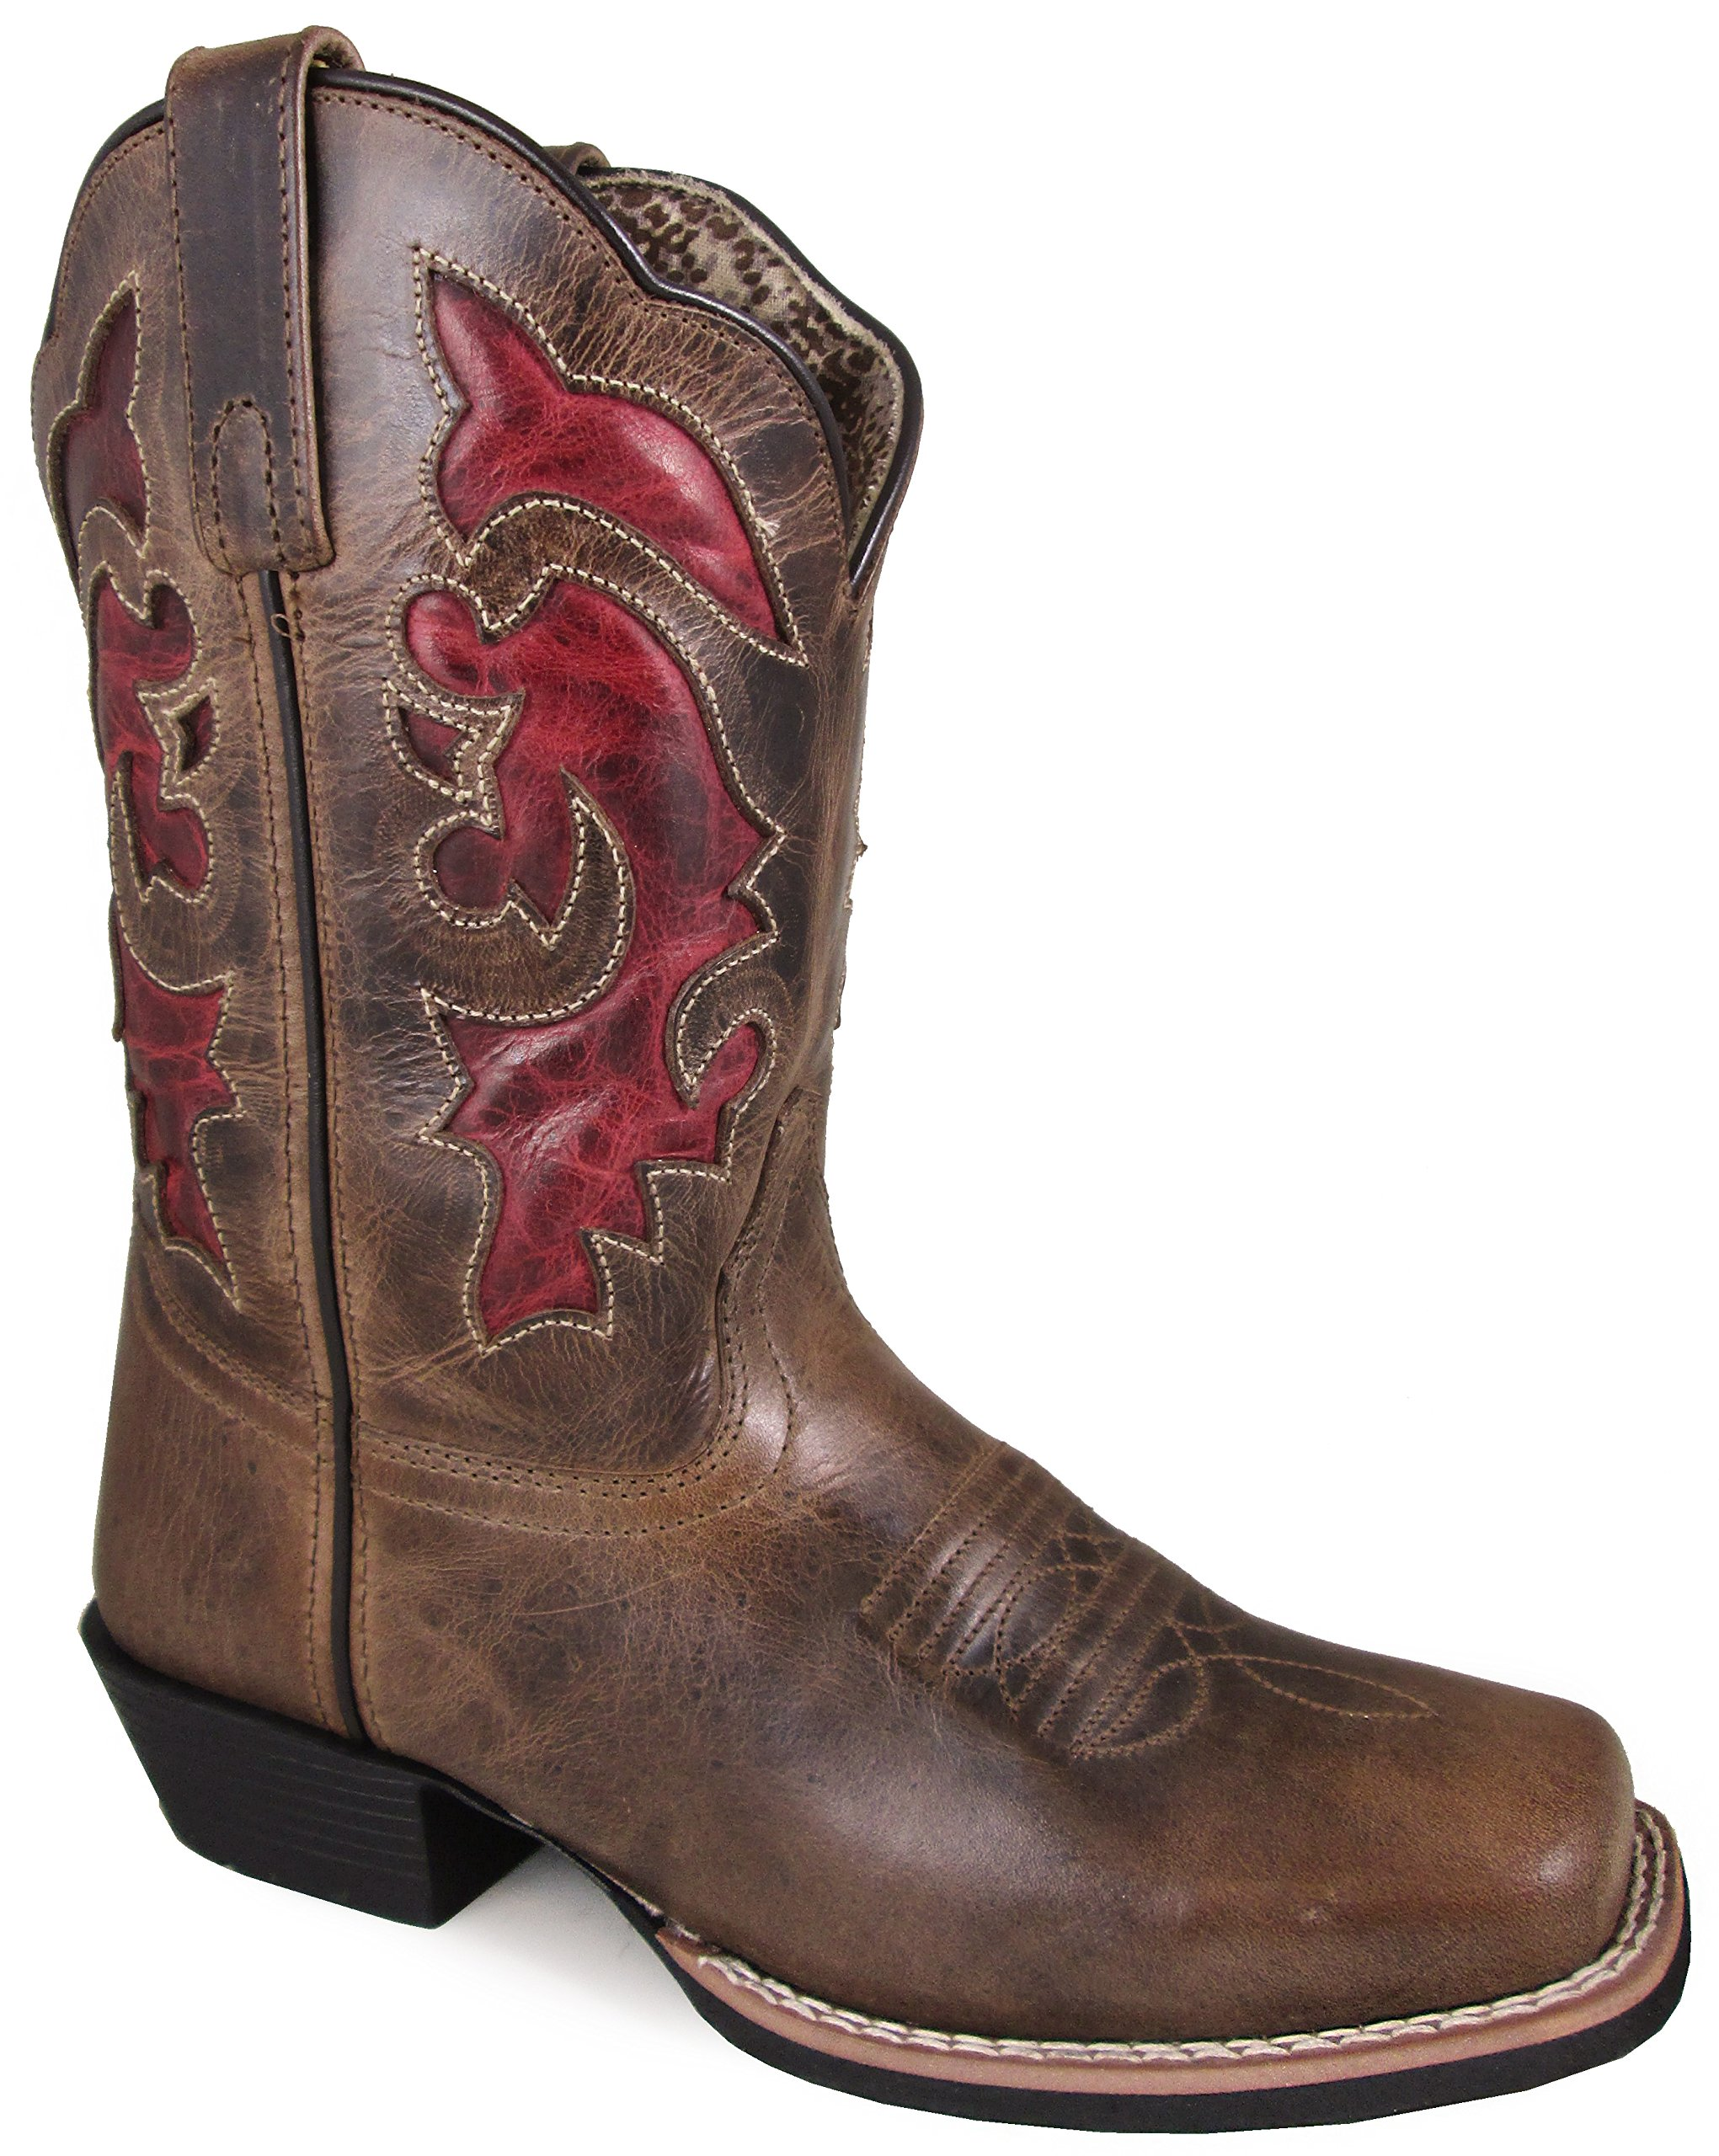 Smoky Mountain Women's Claire Pull On Stitched Design Square Toe Brown Waxed Distress Boots 8.5M